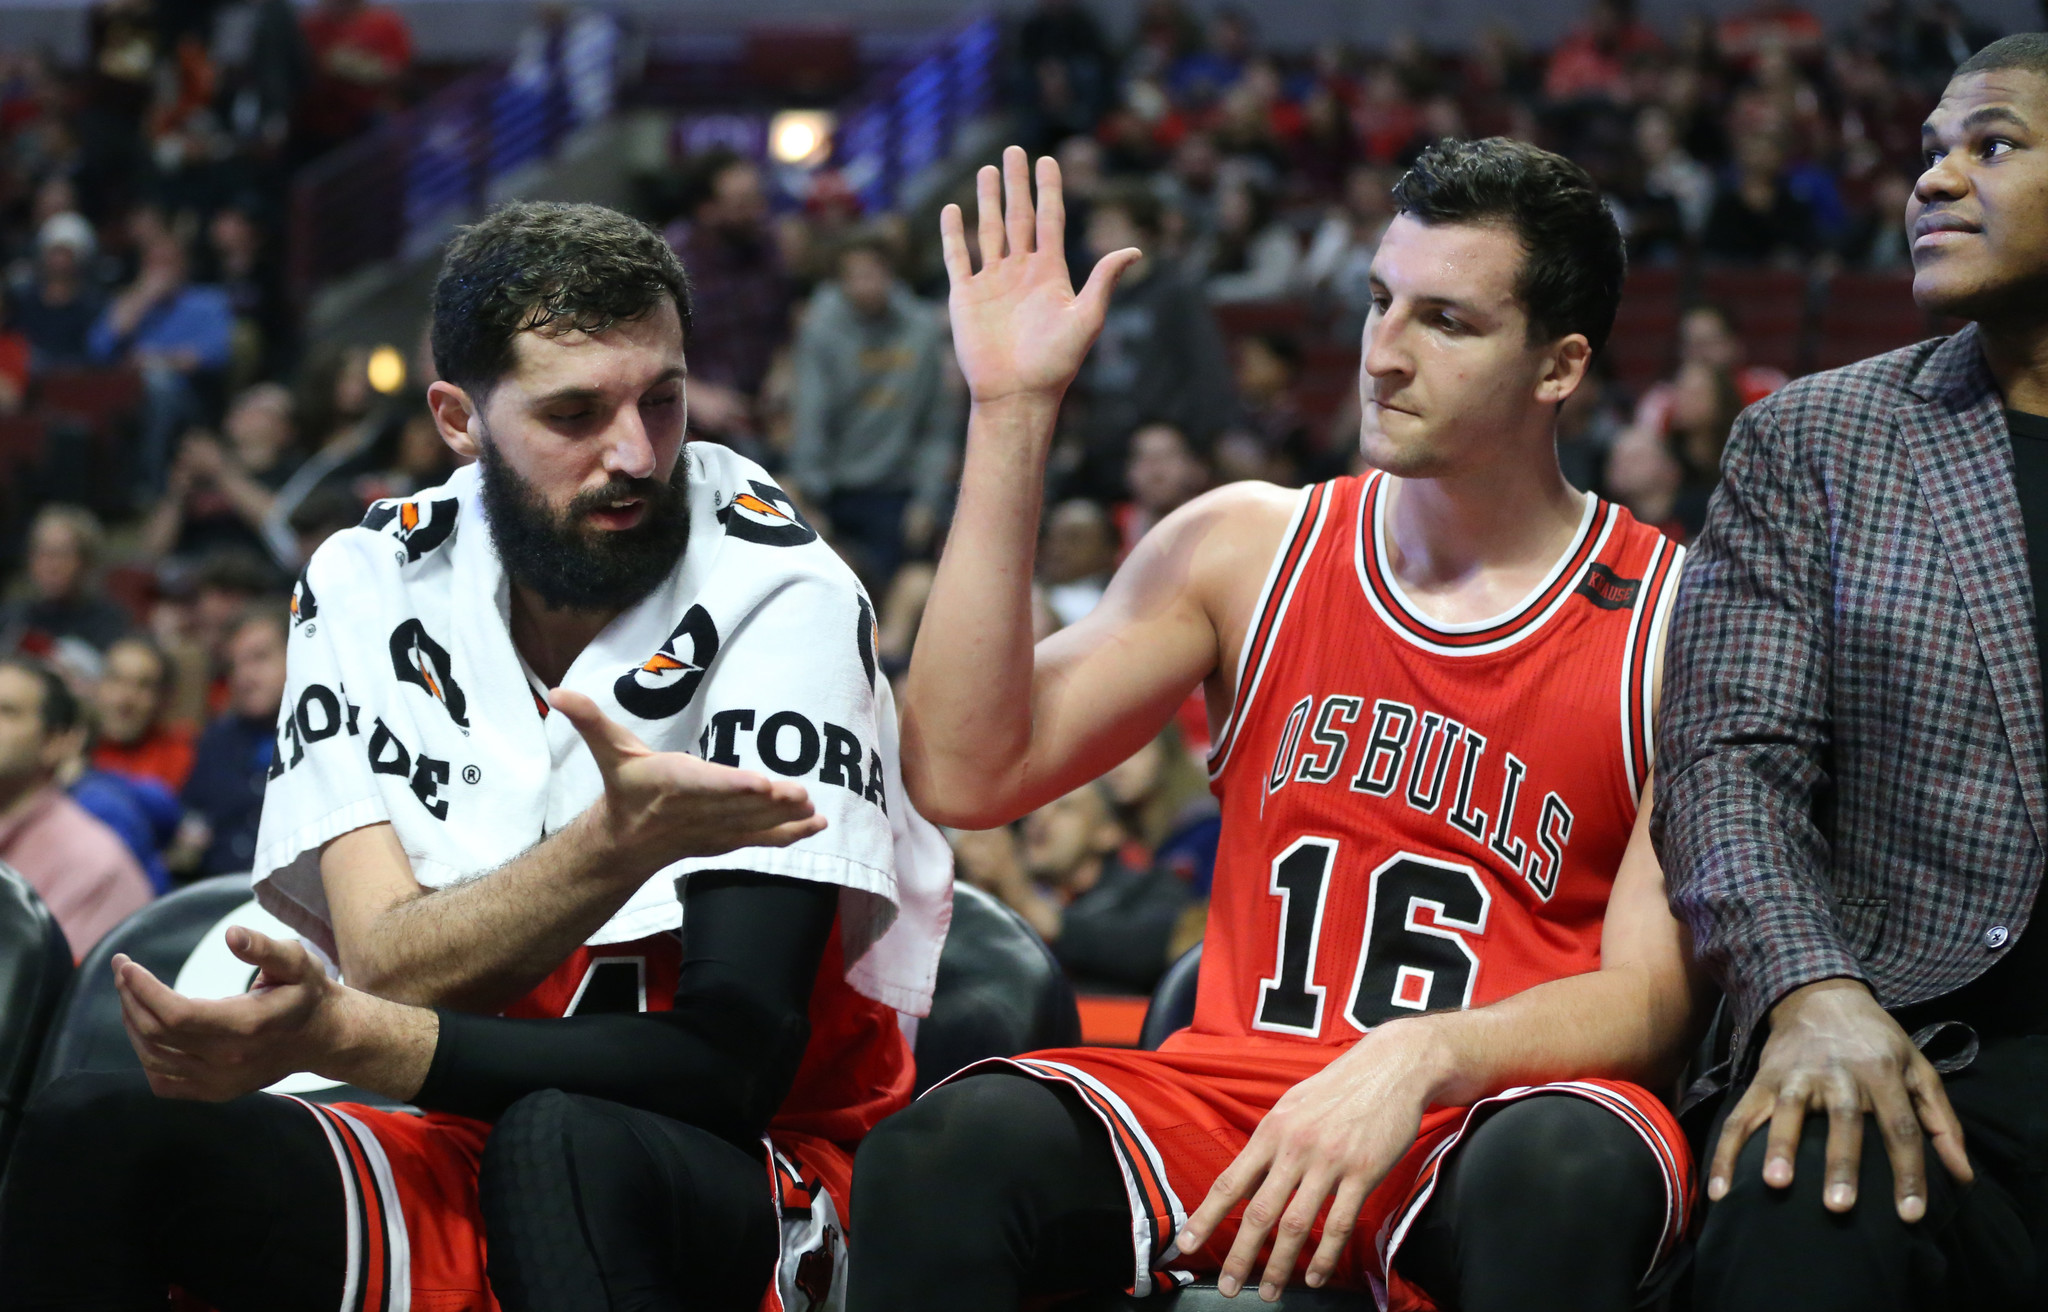 Ct-bulls-beat-pistons-without-robin-lopez-spt-0323-20170322